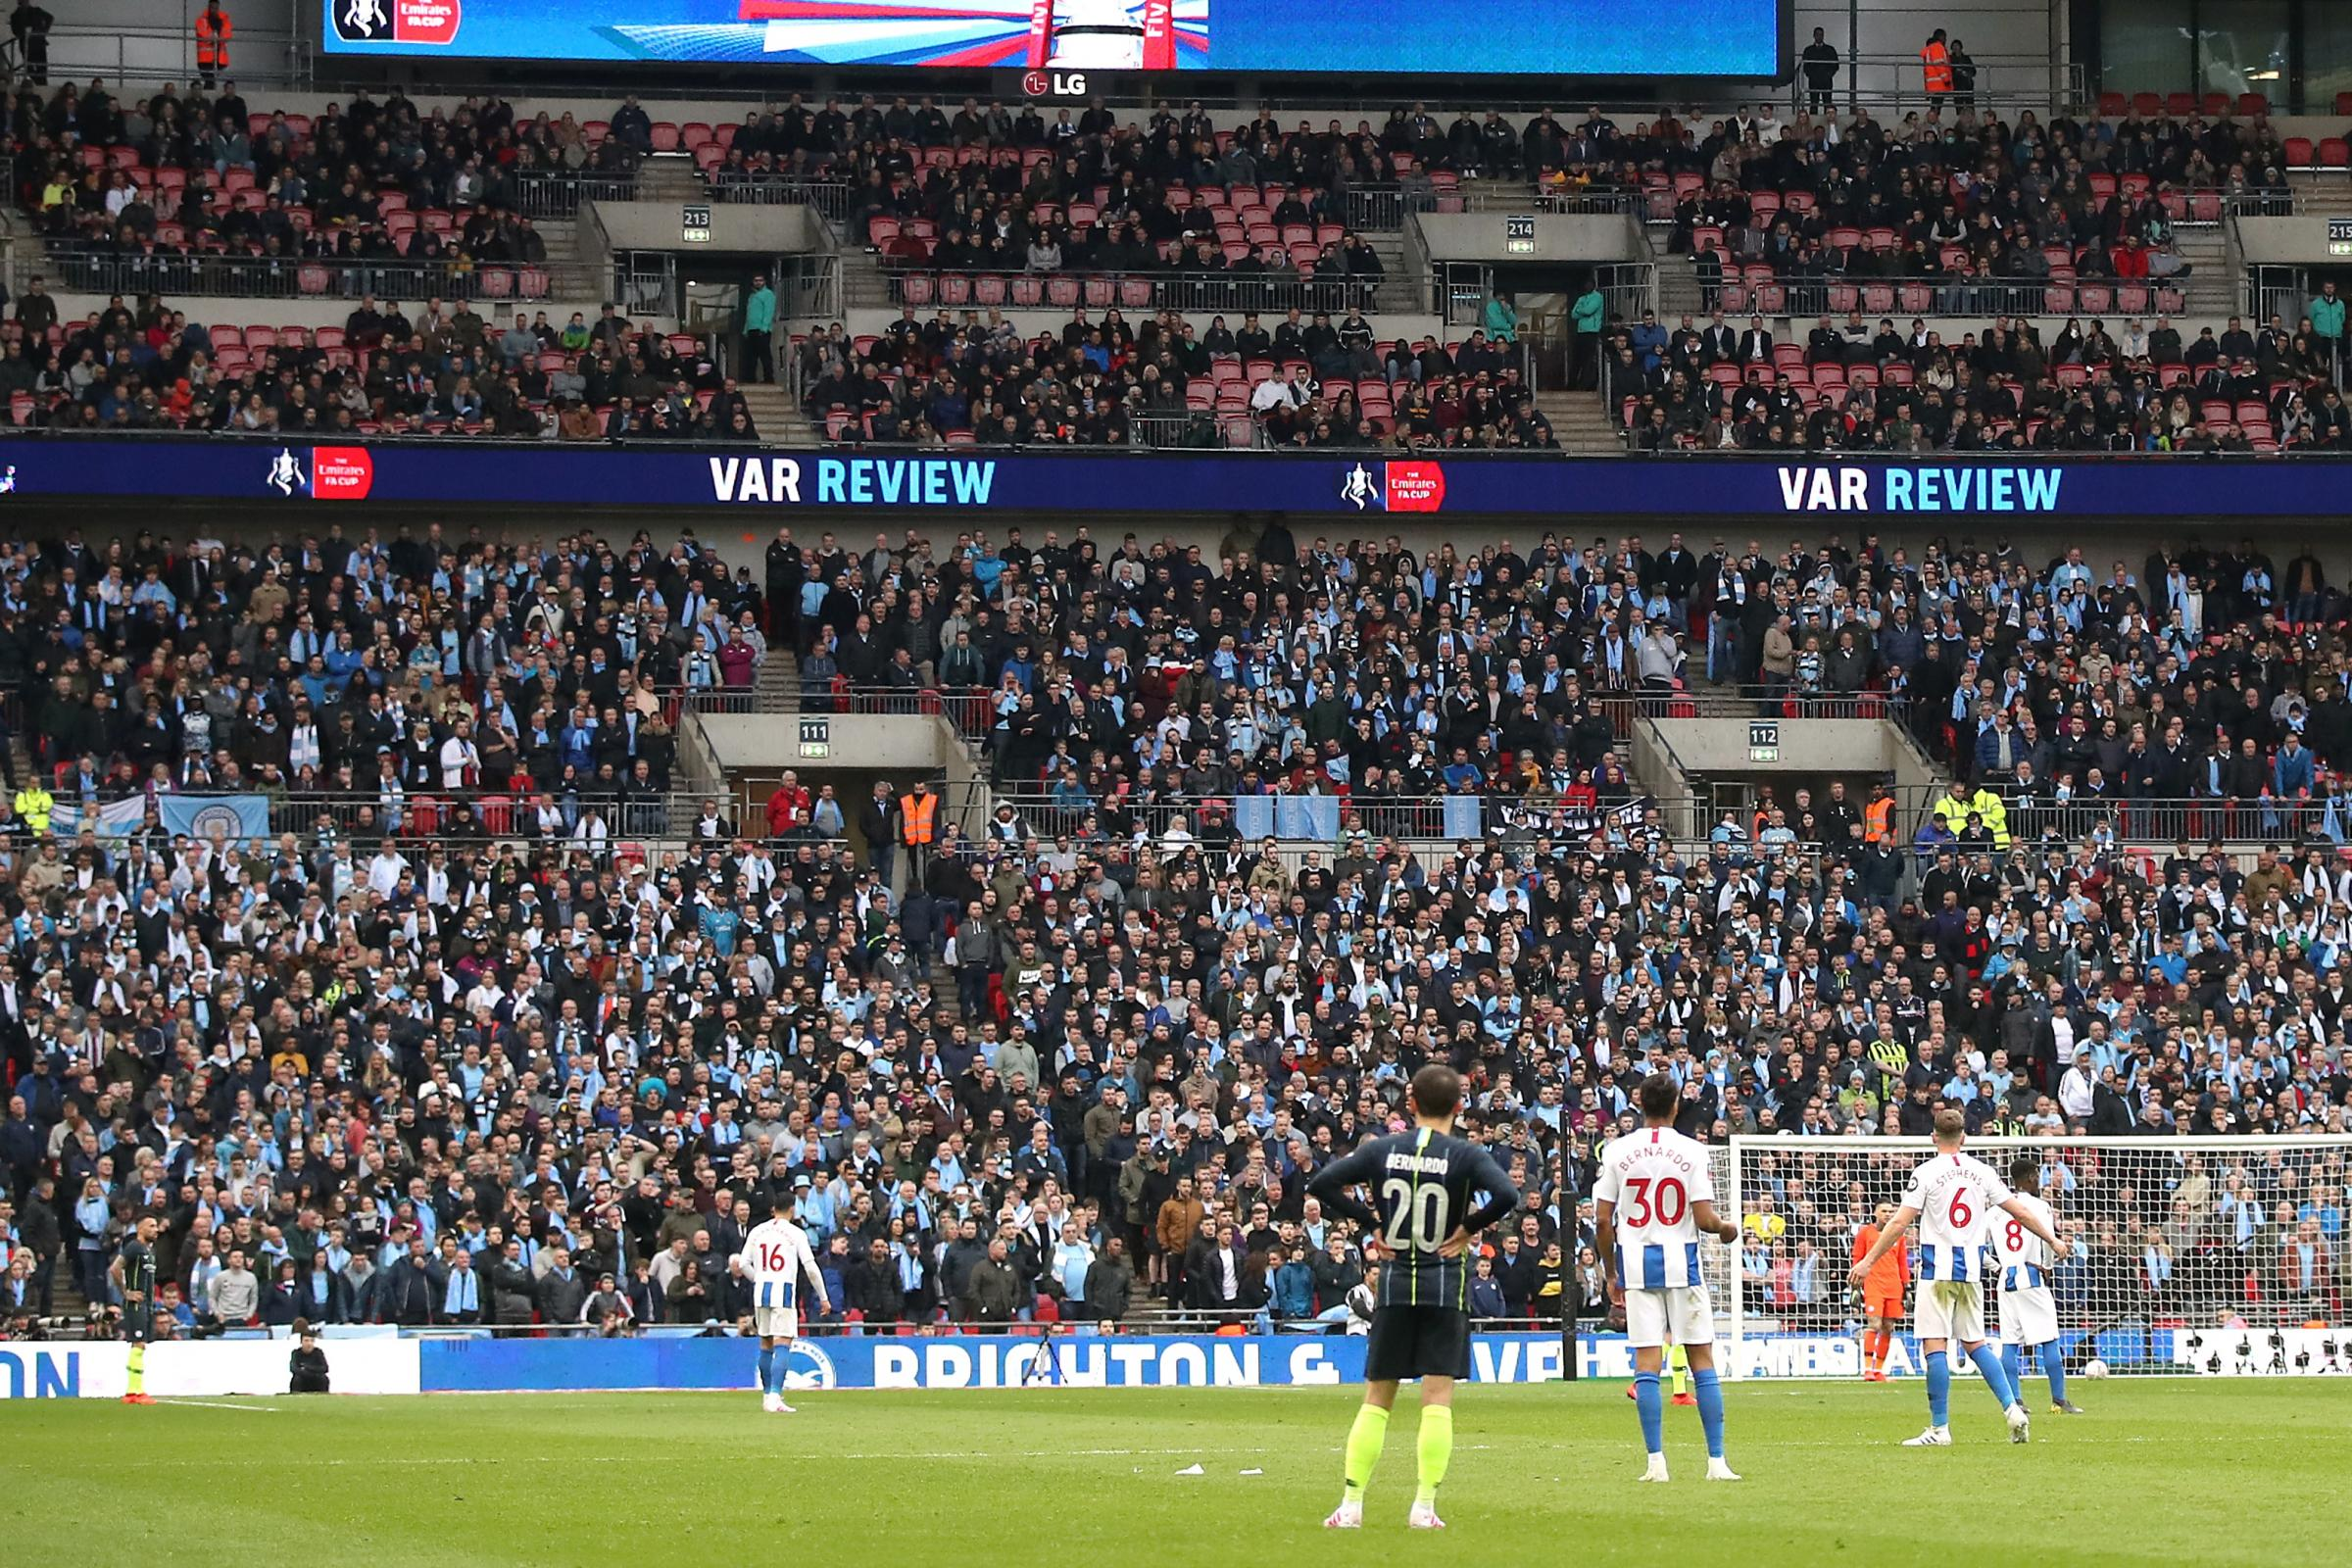 Empty seats visible at Wembley